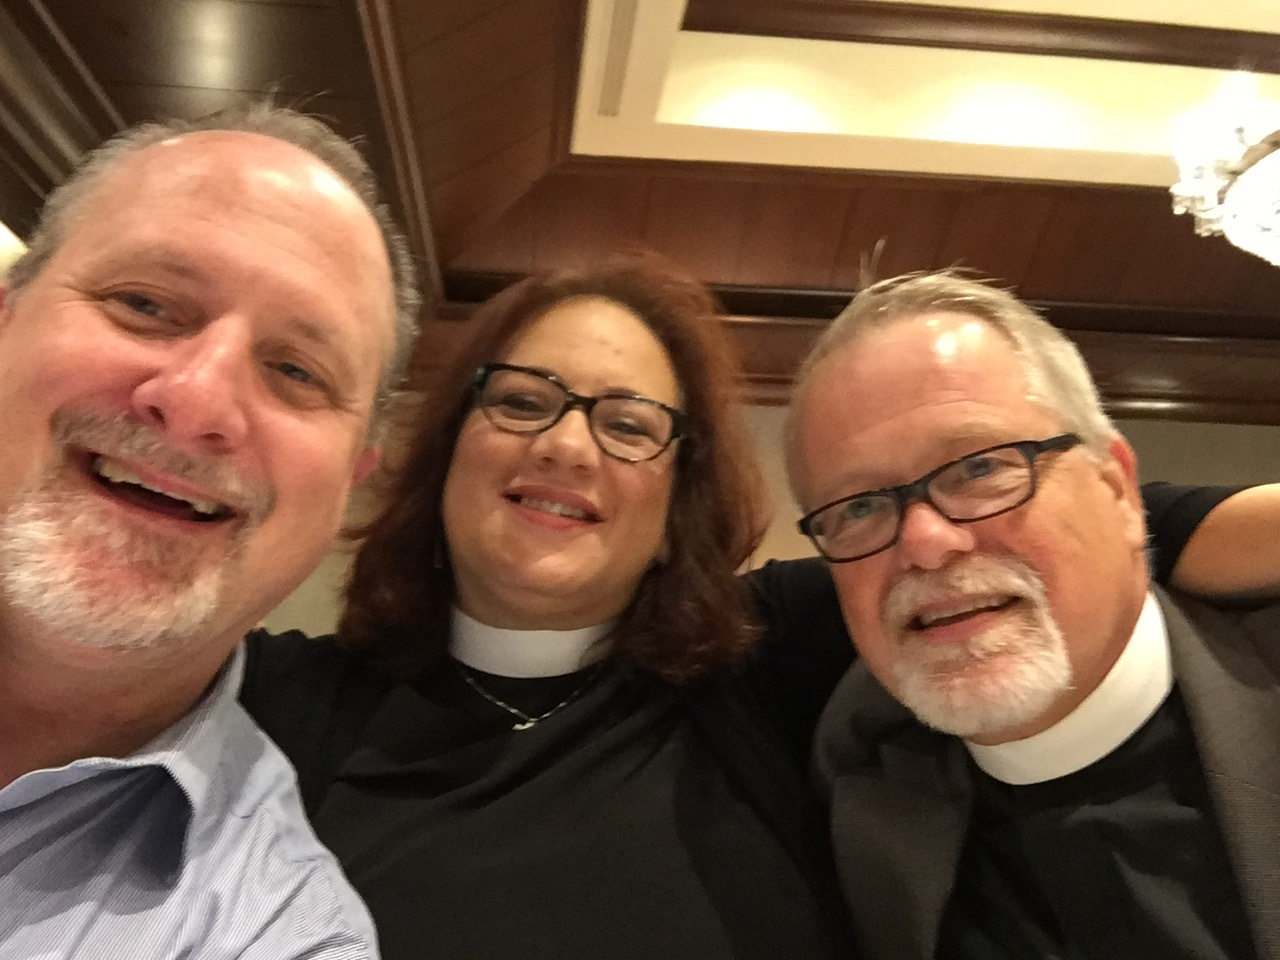 AU's Faith Outreach Specialist Bill Mefford with Rev. Lydia Munoz and Rev. Jim McIntire, both of the United Methodist Church. Photo by Bill Mefford.